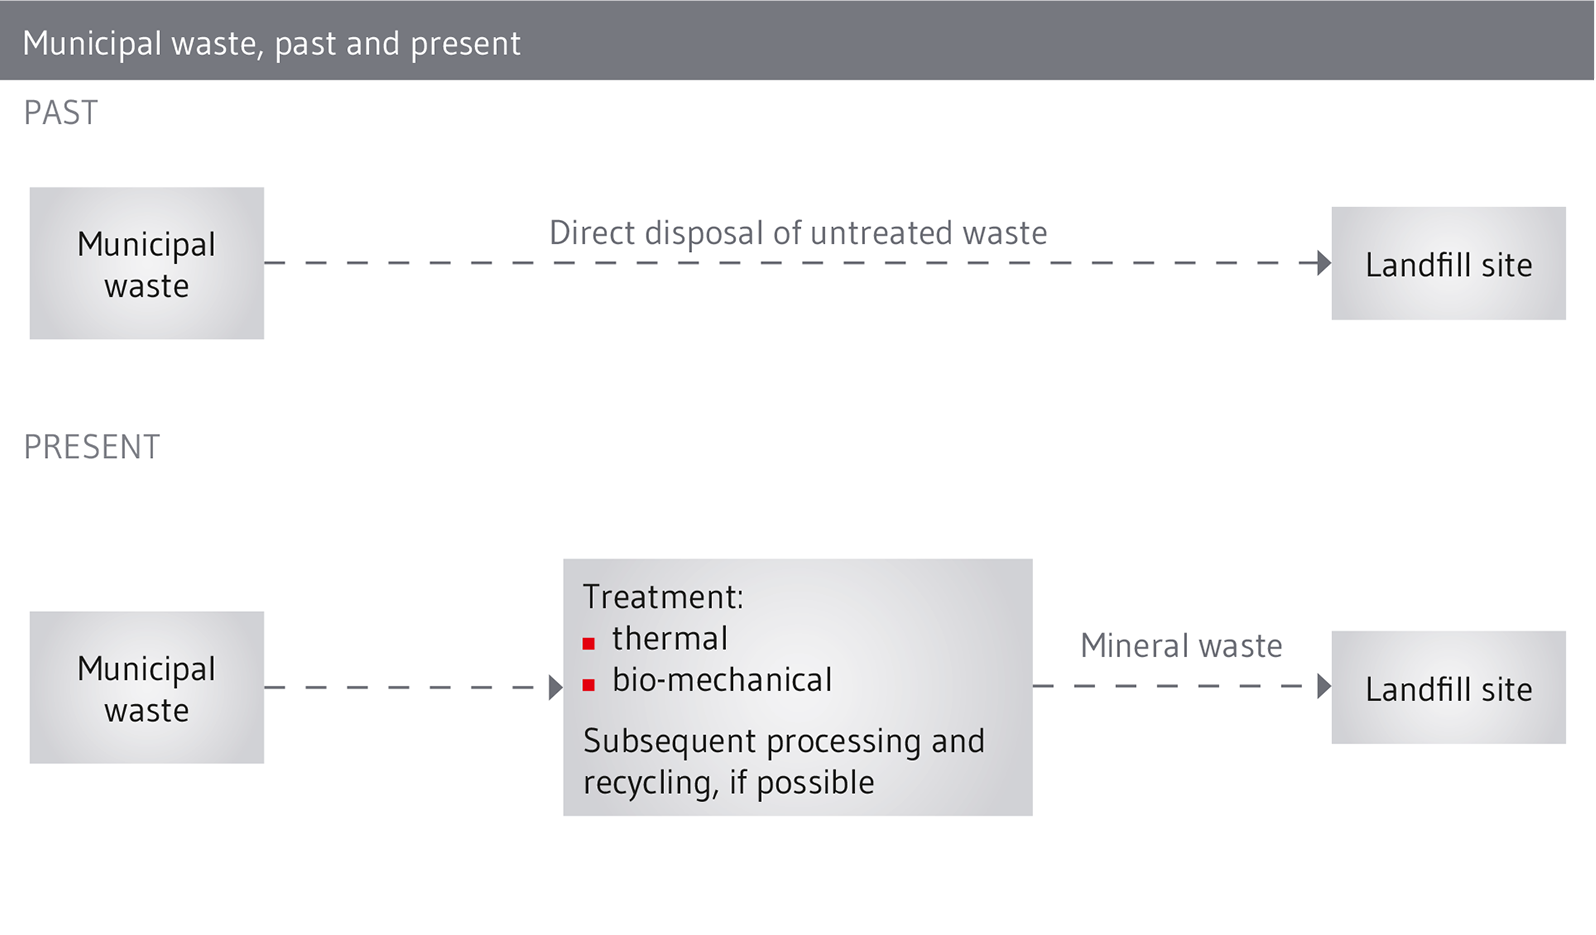 Municipal waste is treated before landfilling